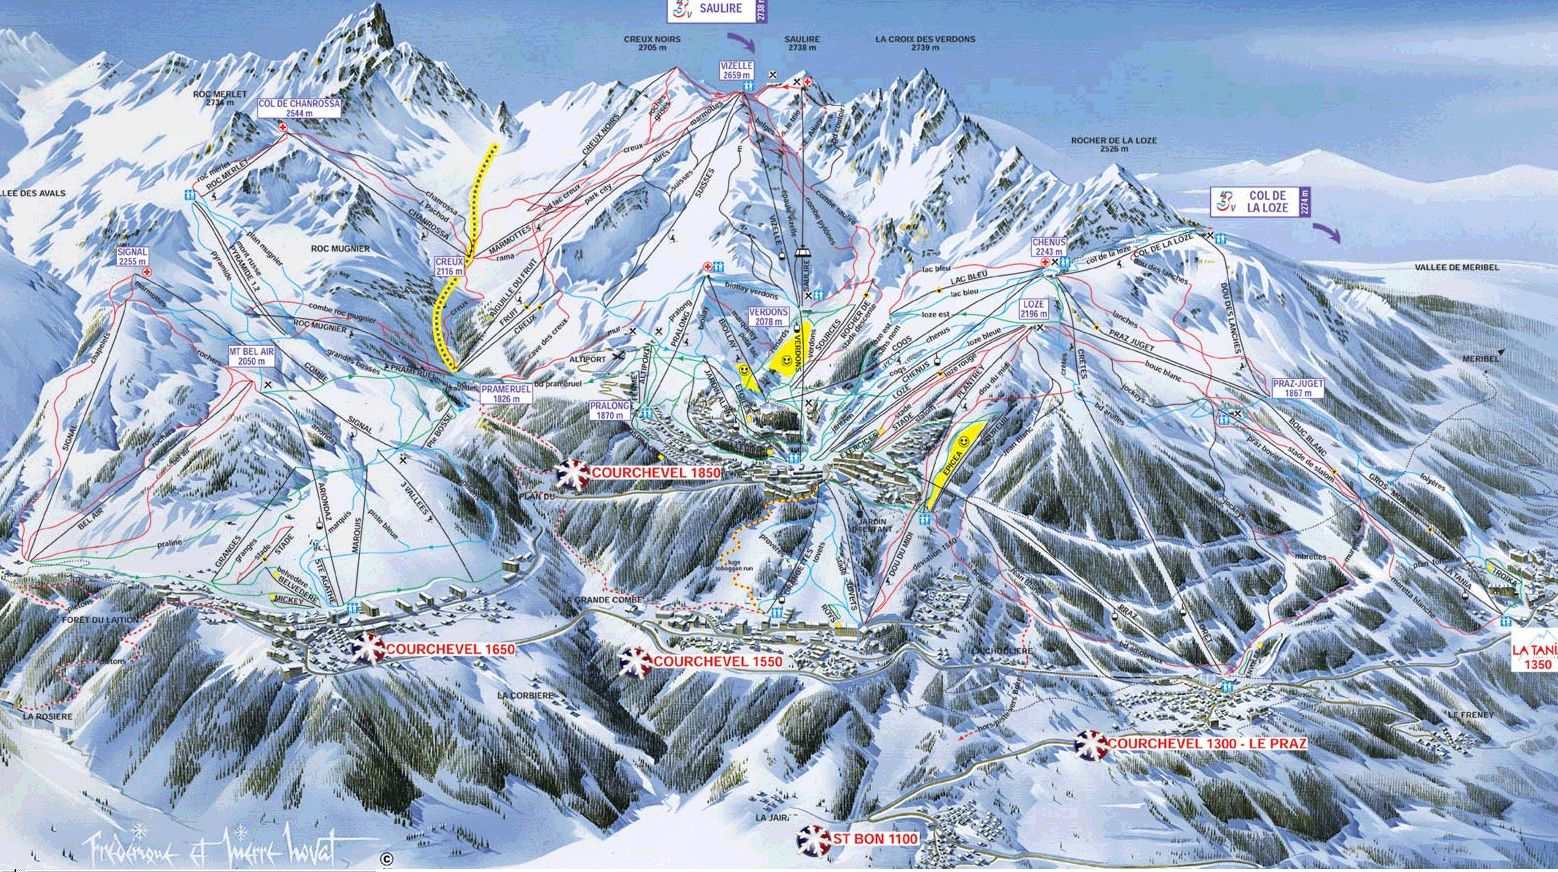 http://www.latania.co.uk/skiing/maps/CourchevelValley.jpg